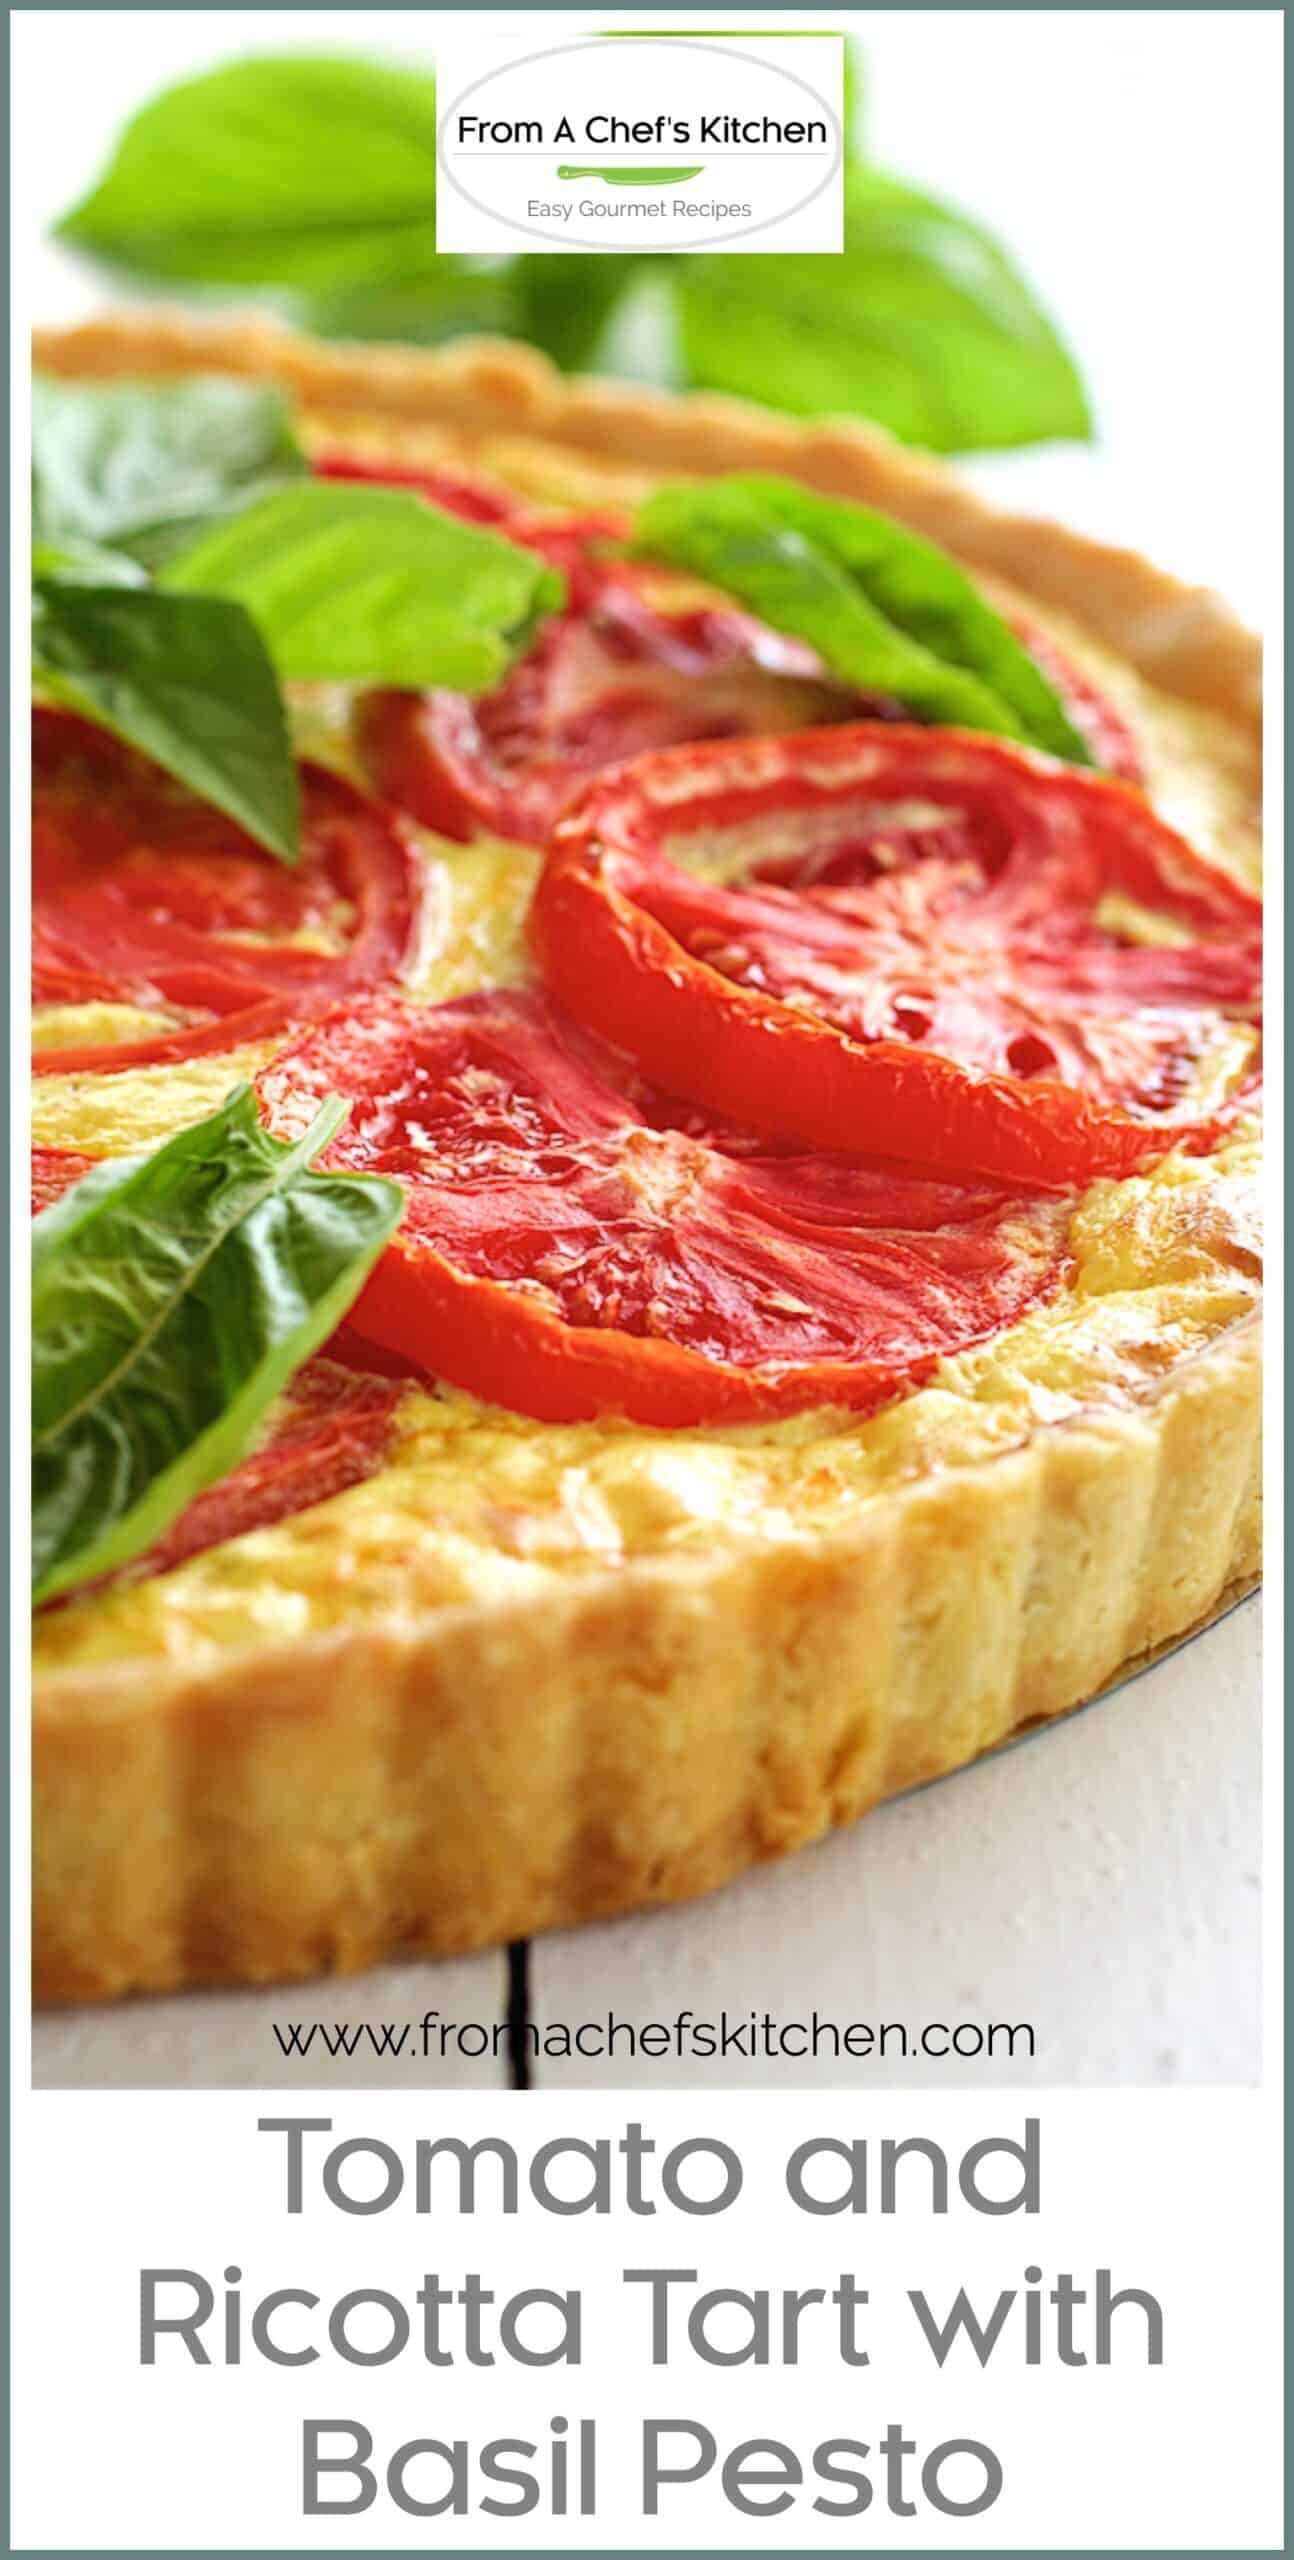 Photo of Tomato Ricotta Tart with Basil Pesto